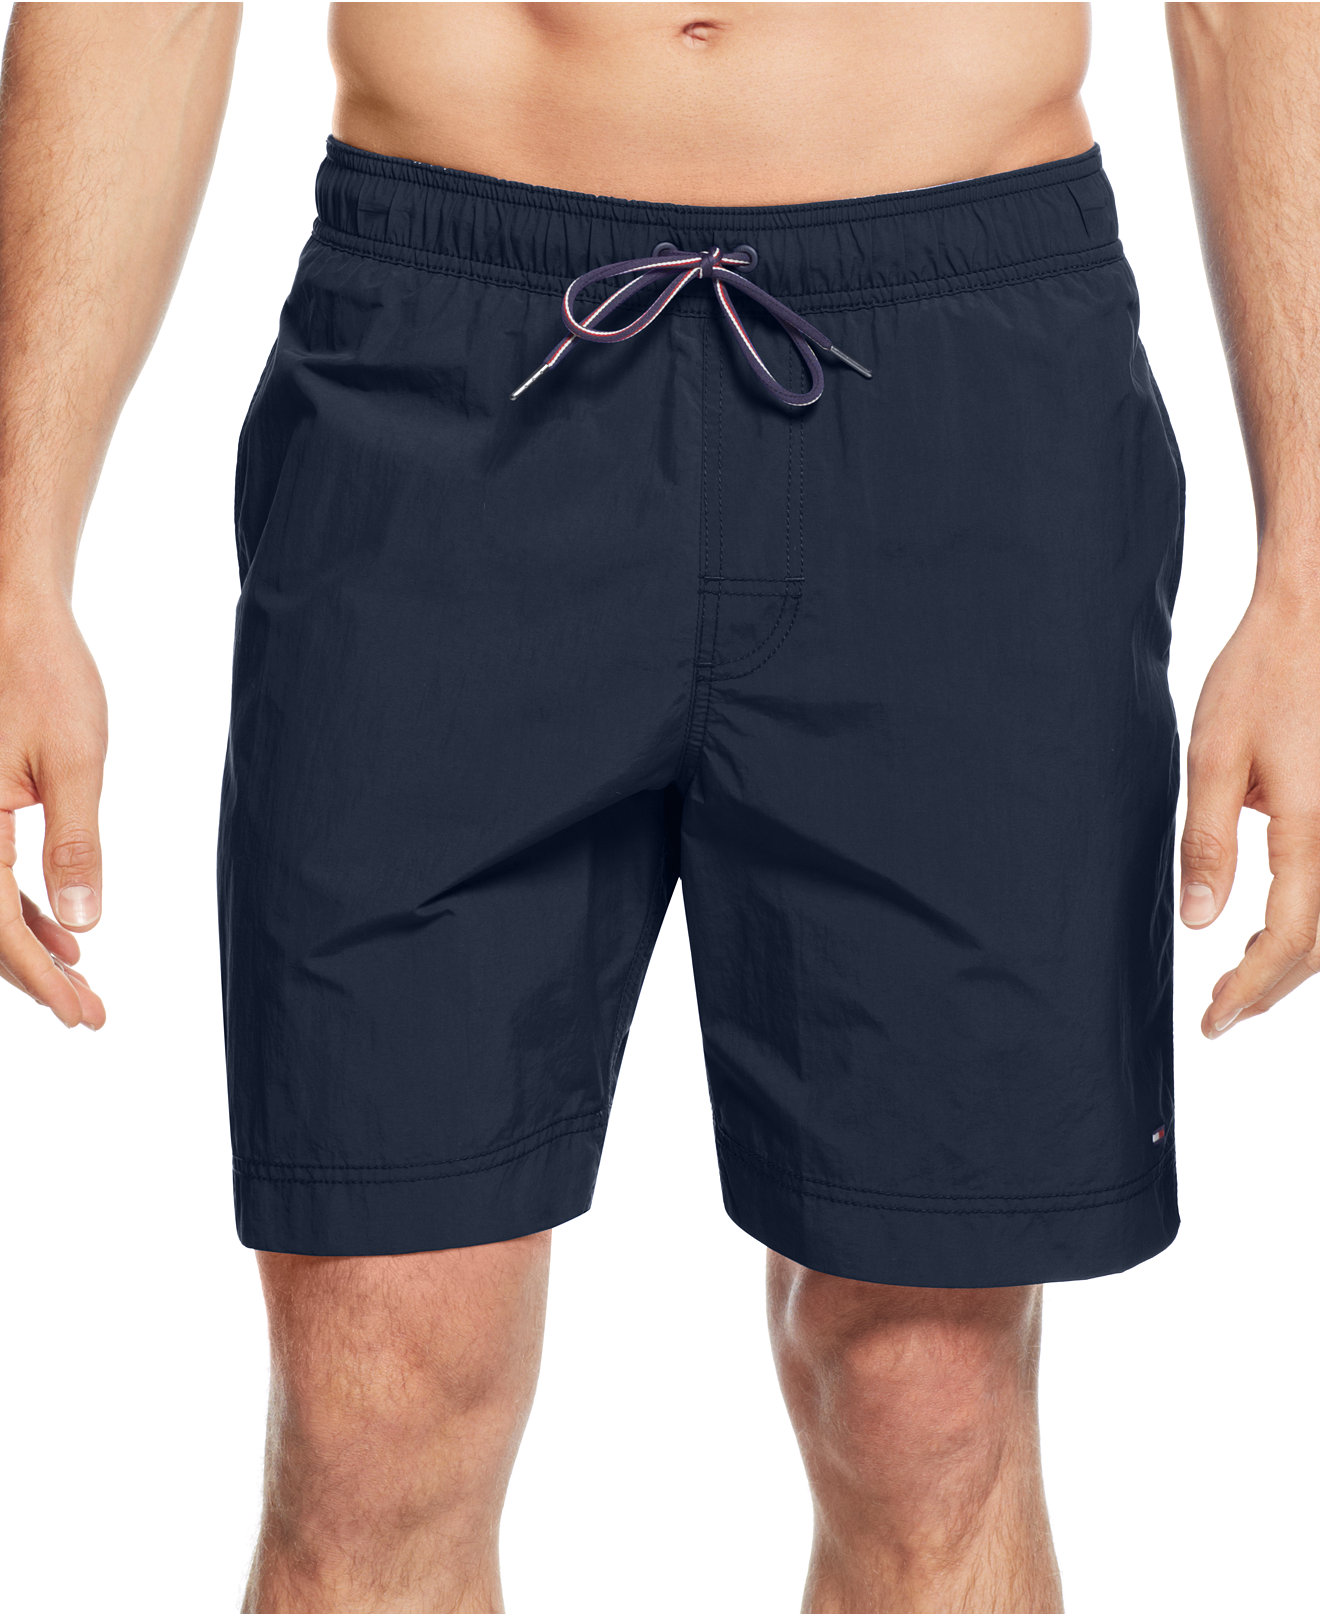 Shop online for Men's Swimwear: Board Shorts & Swim Trunks at fabulousdown4allb7.cf Find the newest lengths & patterns. Free Shipping. Free Returns. All the time.